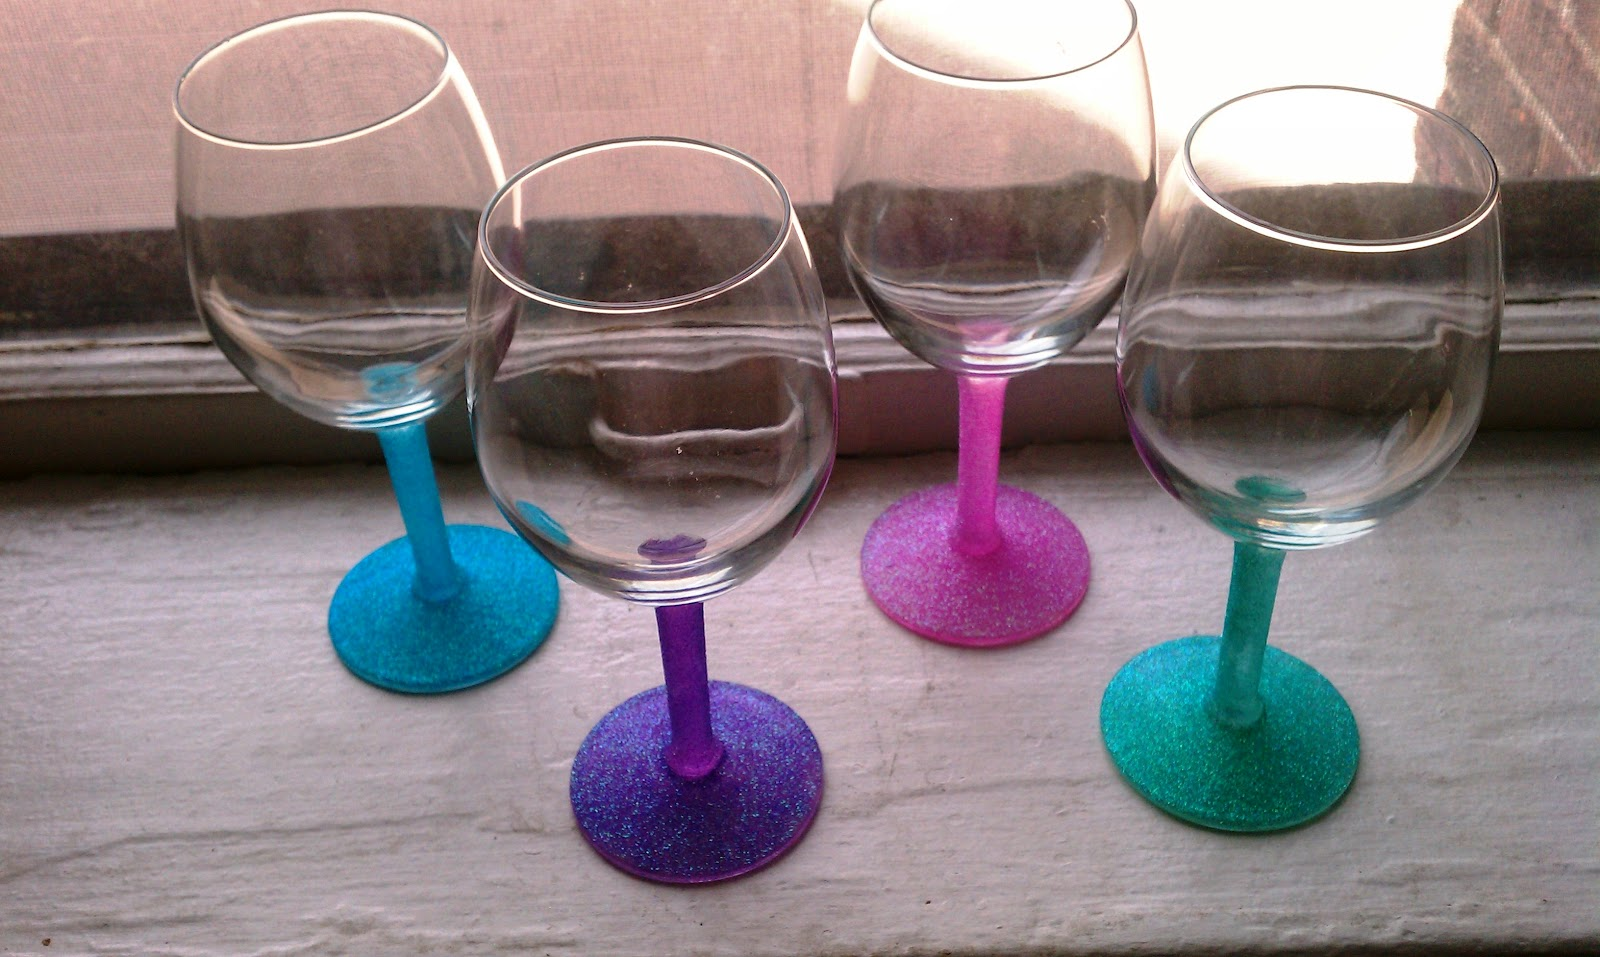 Cupcakes couture diy glitter wine glasses for Diy painted wine glasses